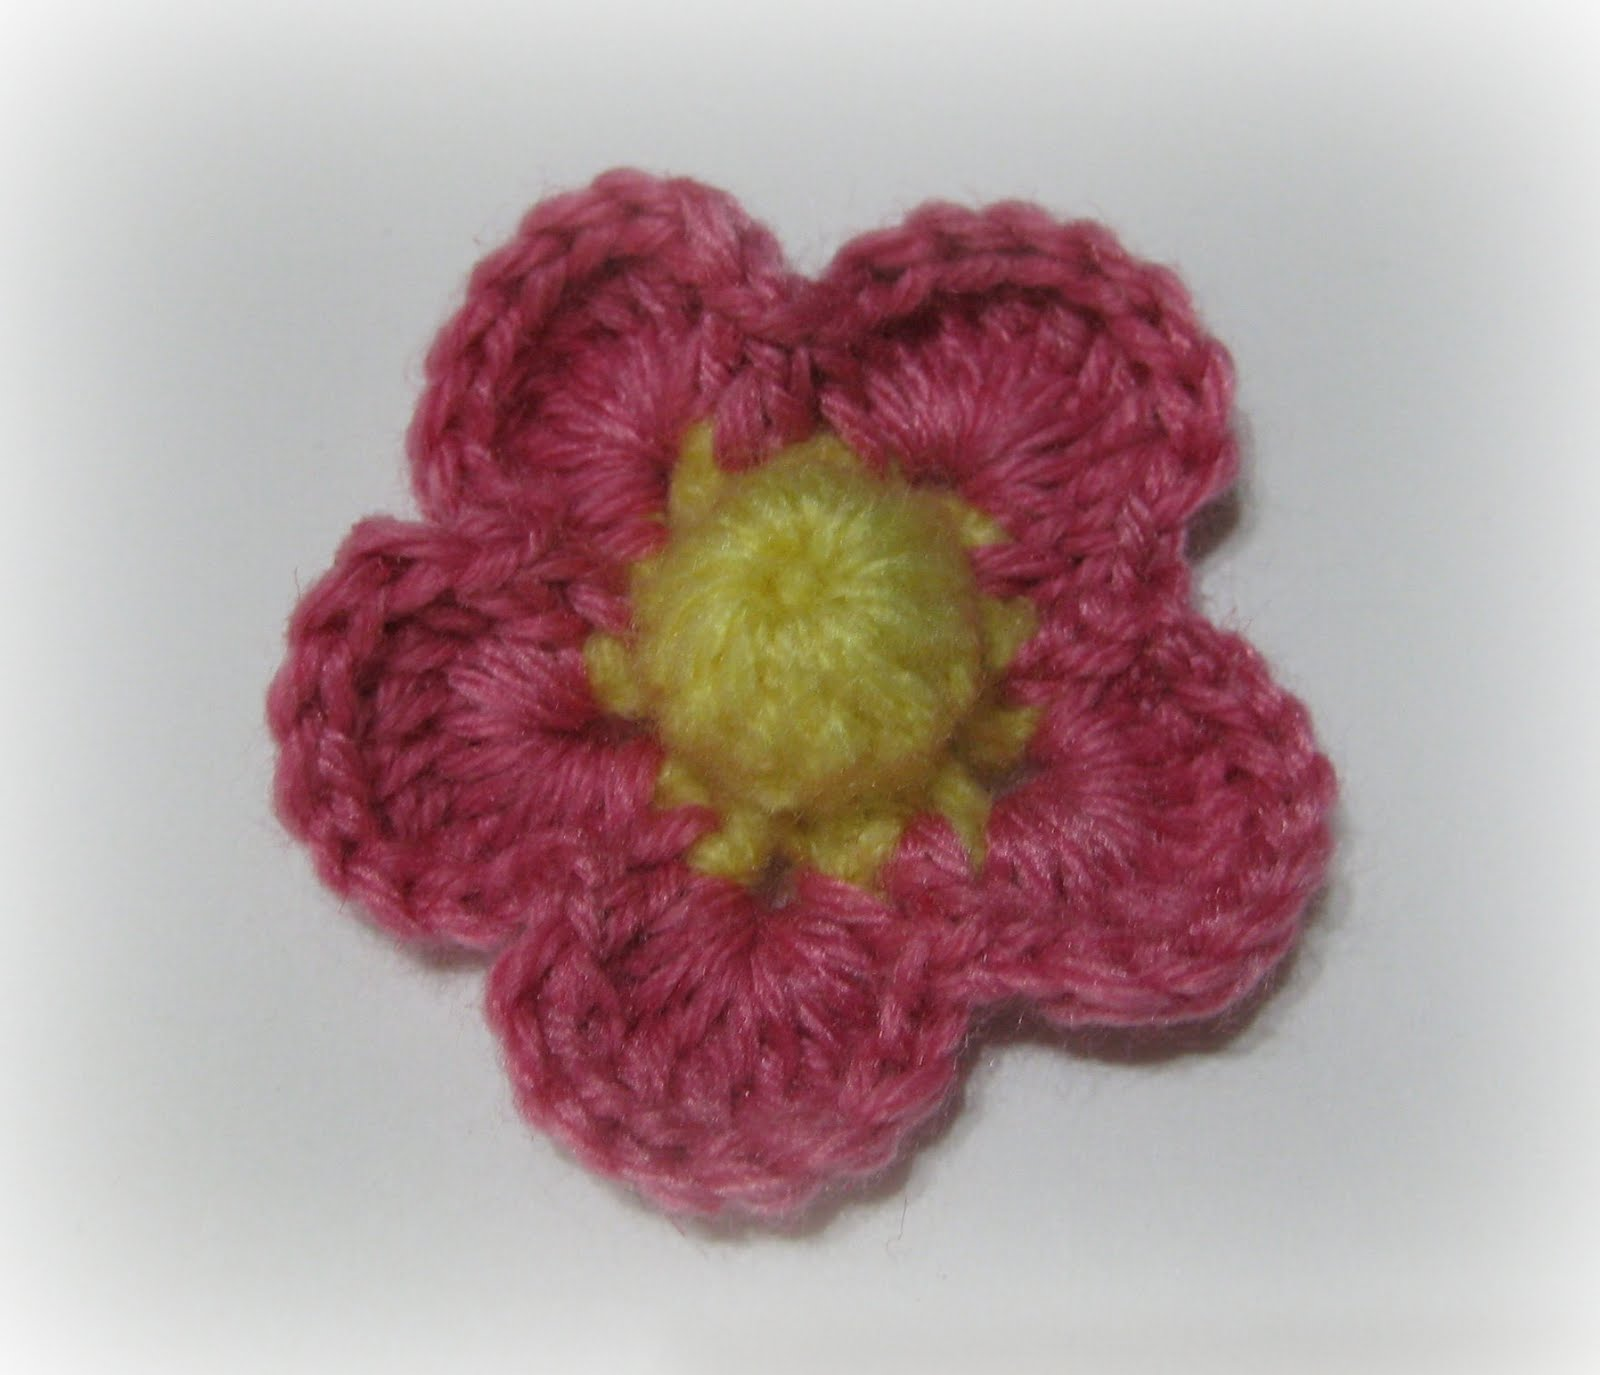 Marigold Pin Crochet Flower Pattern | FaveCrafts.com